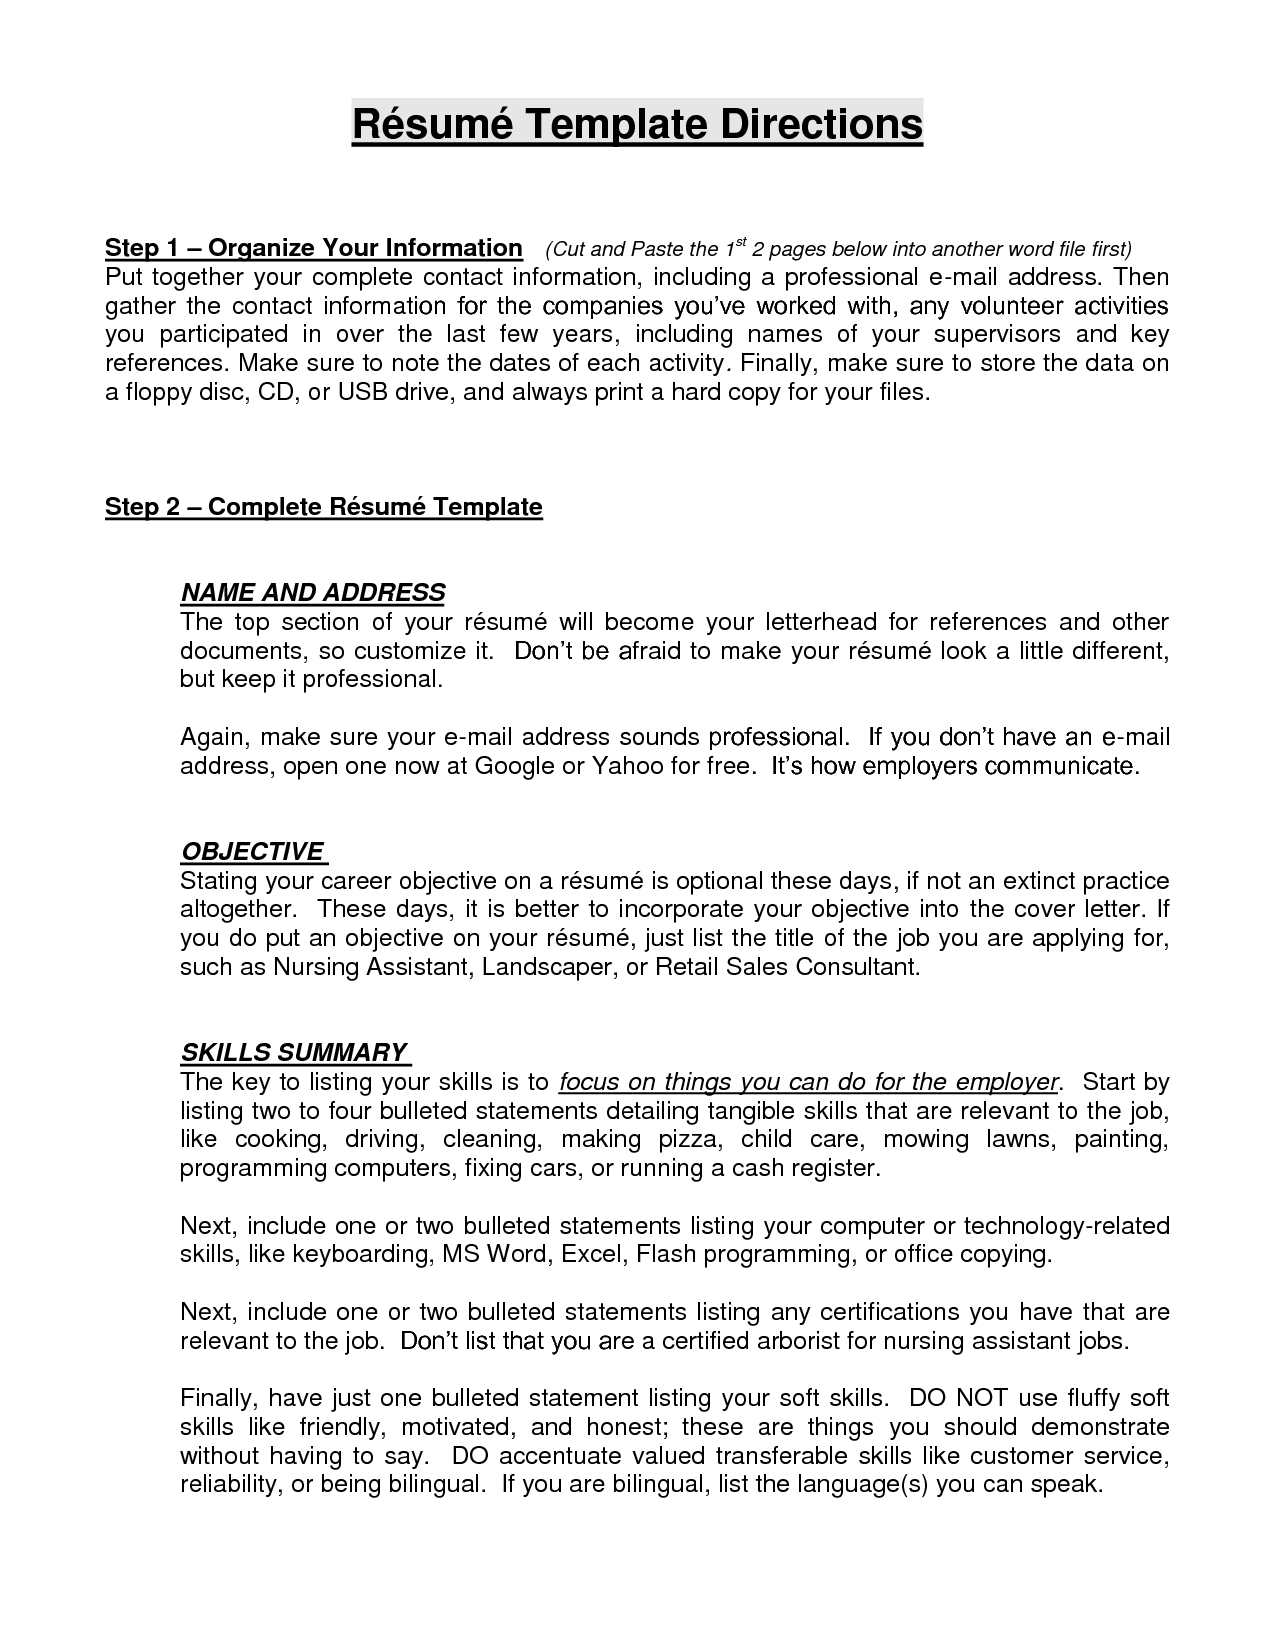 Best Objective Statements For Resumes 10 Sample Resume Objective Statements